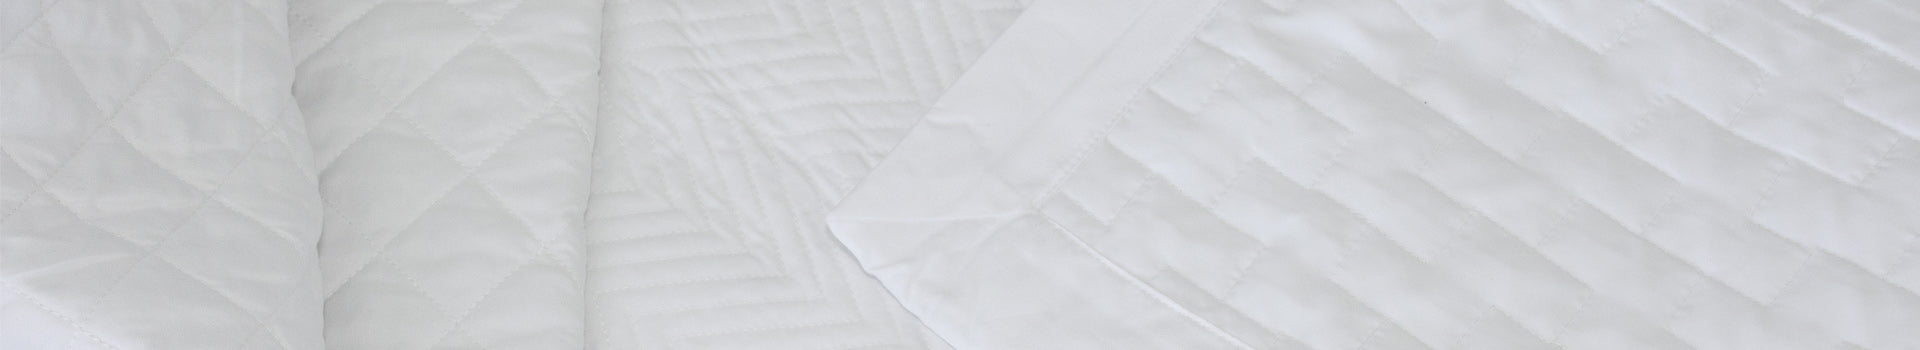 Explore Luxury Collection Of Quilted Blankets And Cotton